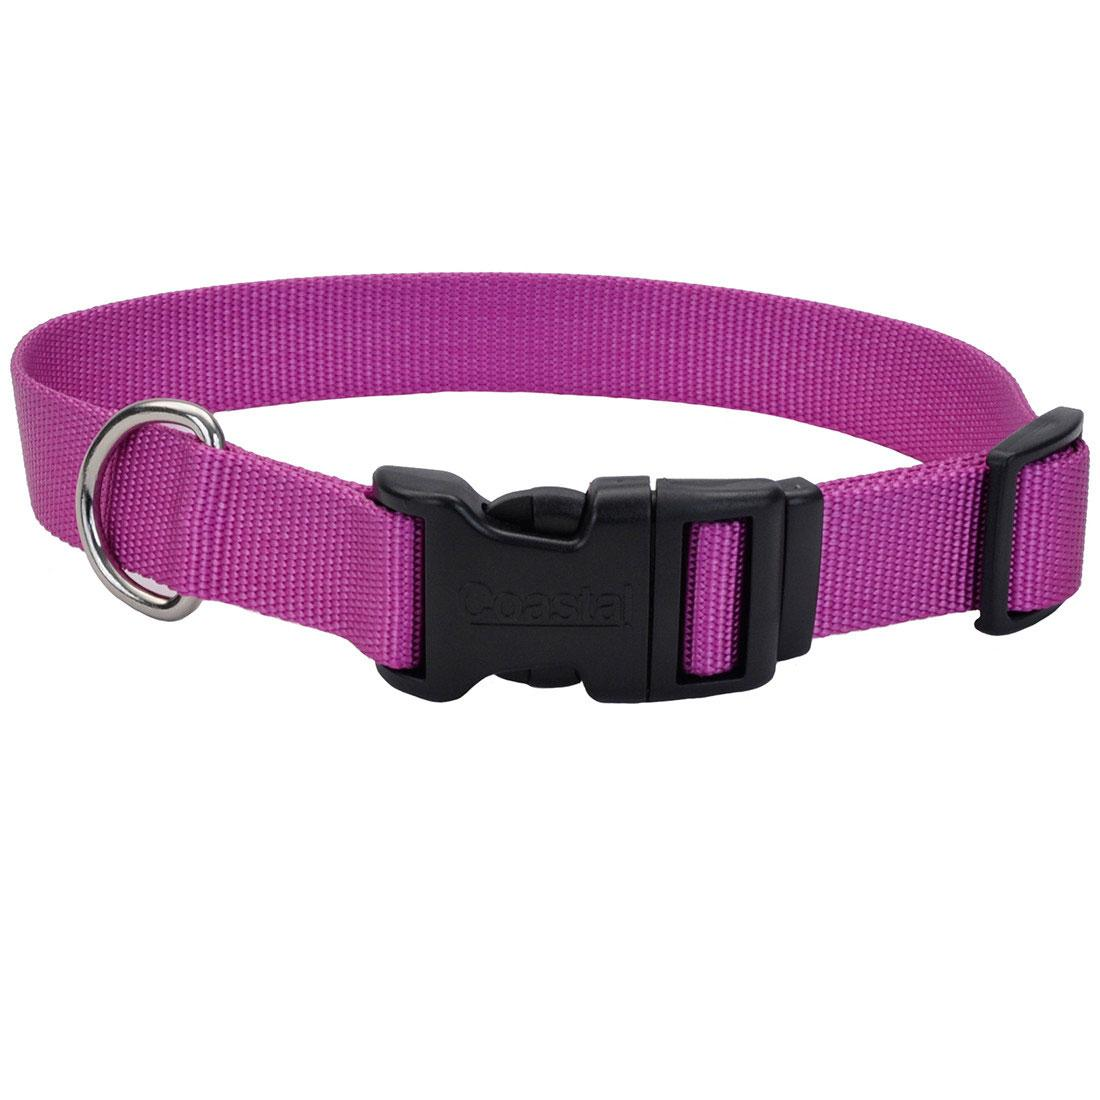 Coastal Adjustable Collar with Plastic Buckle for Dogs, Orchid Image